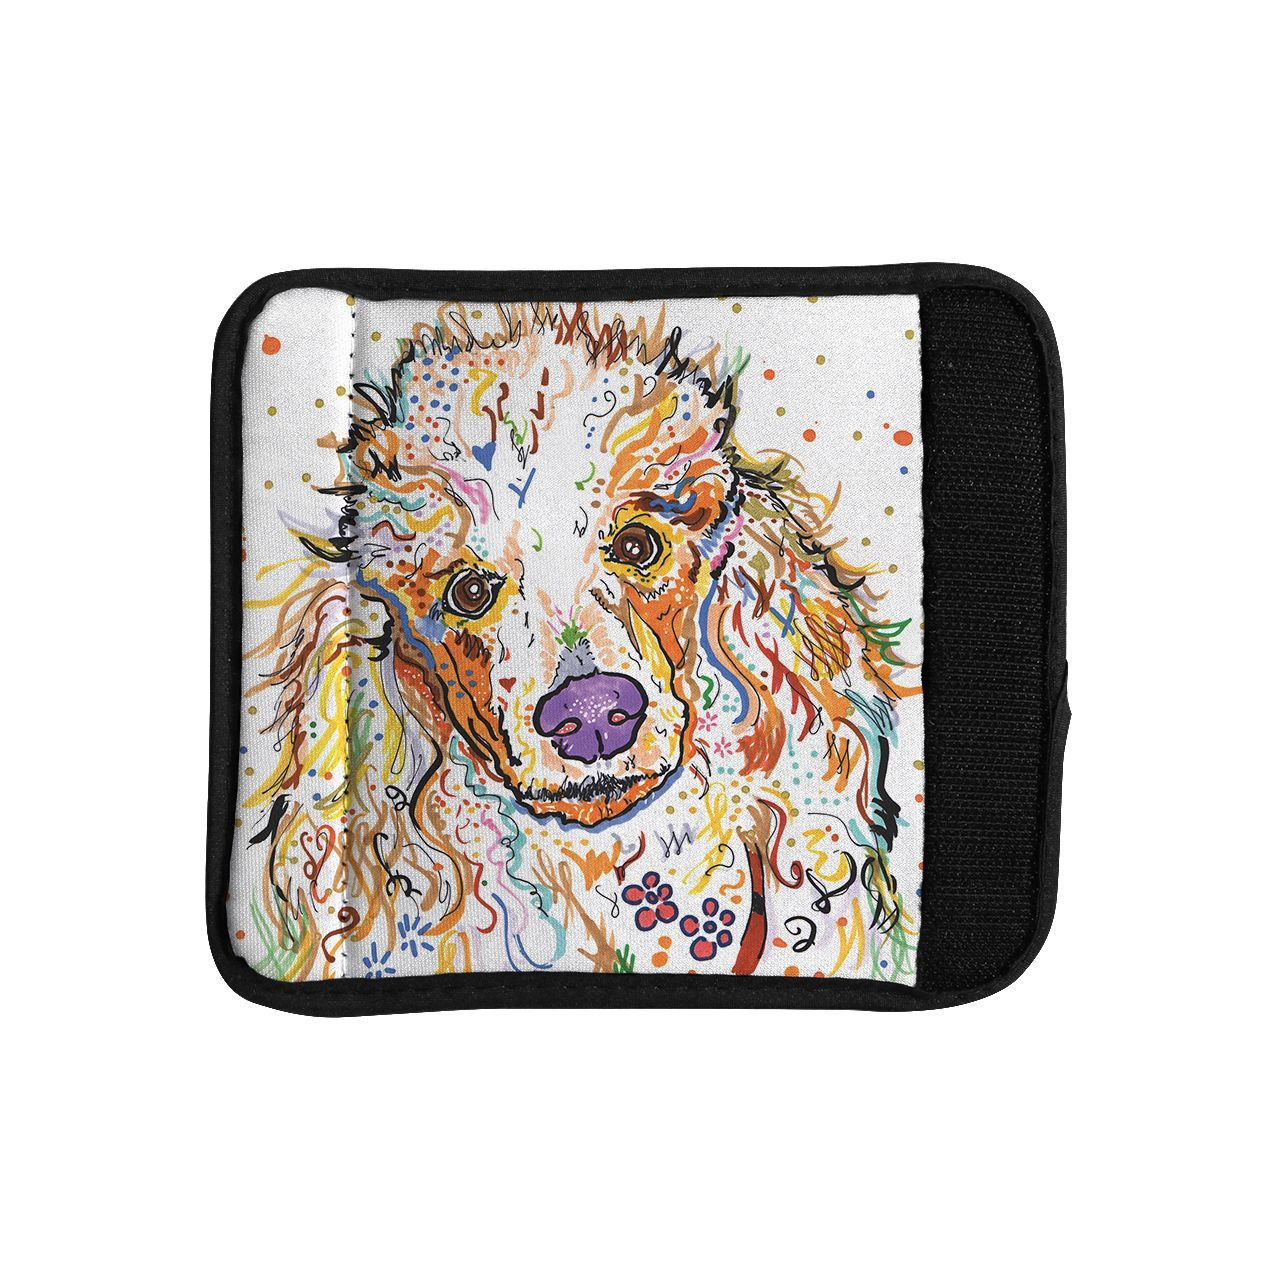 Kess InHouse Rebecca Fischer 'Lily' Poodle Luggage Handle Wrap